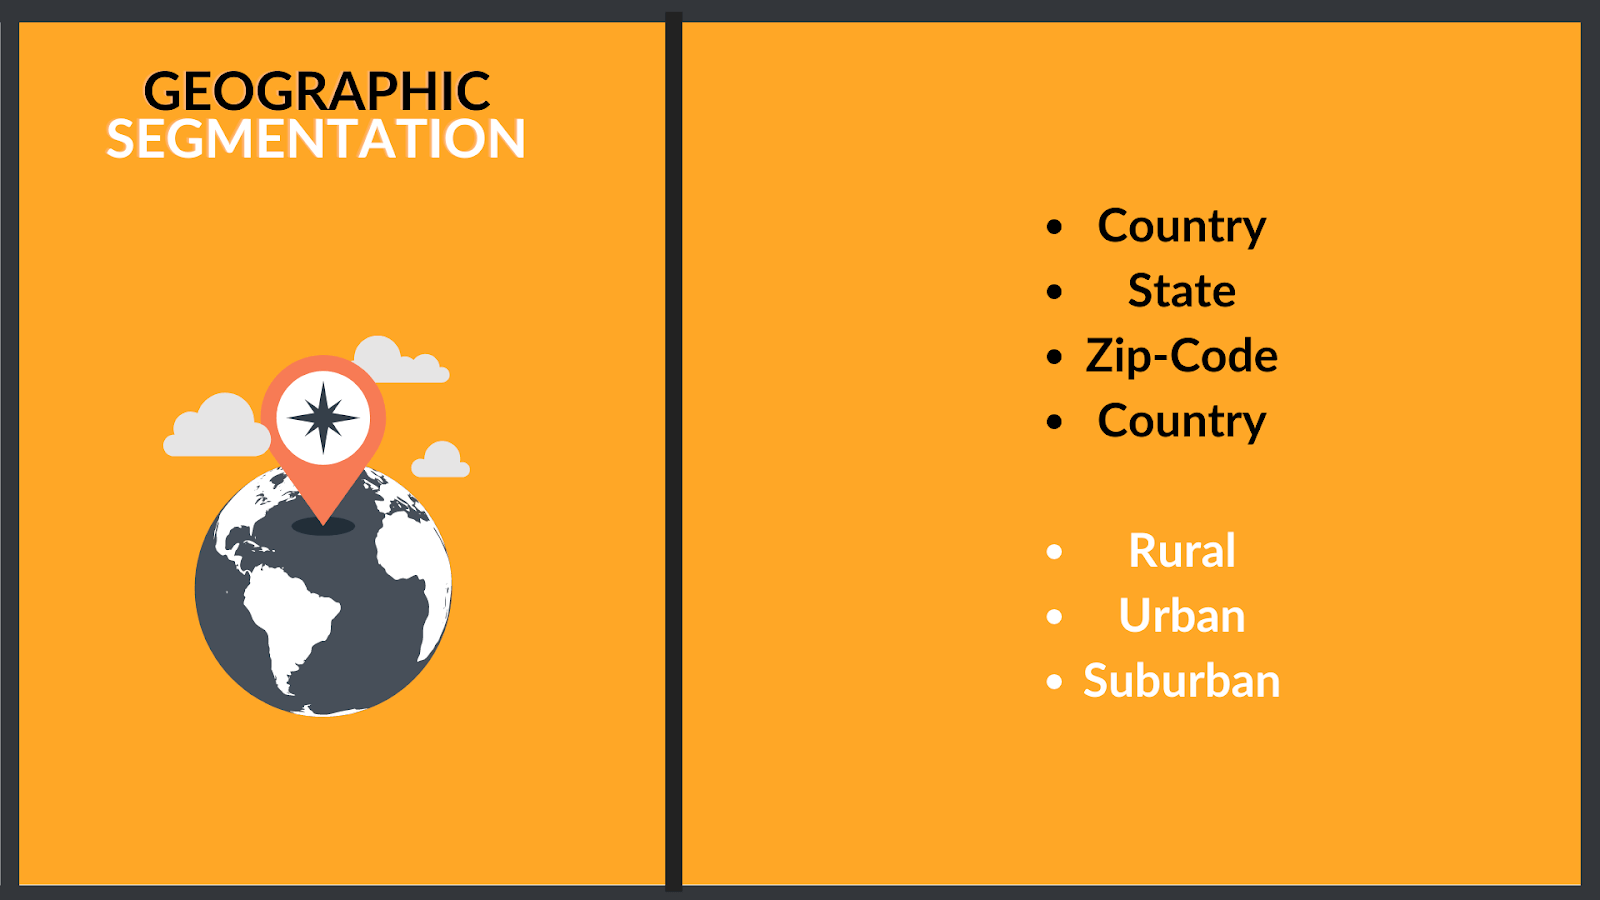 How you can segmentation based on geography